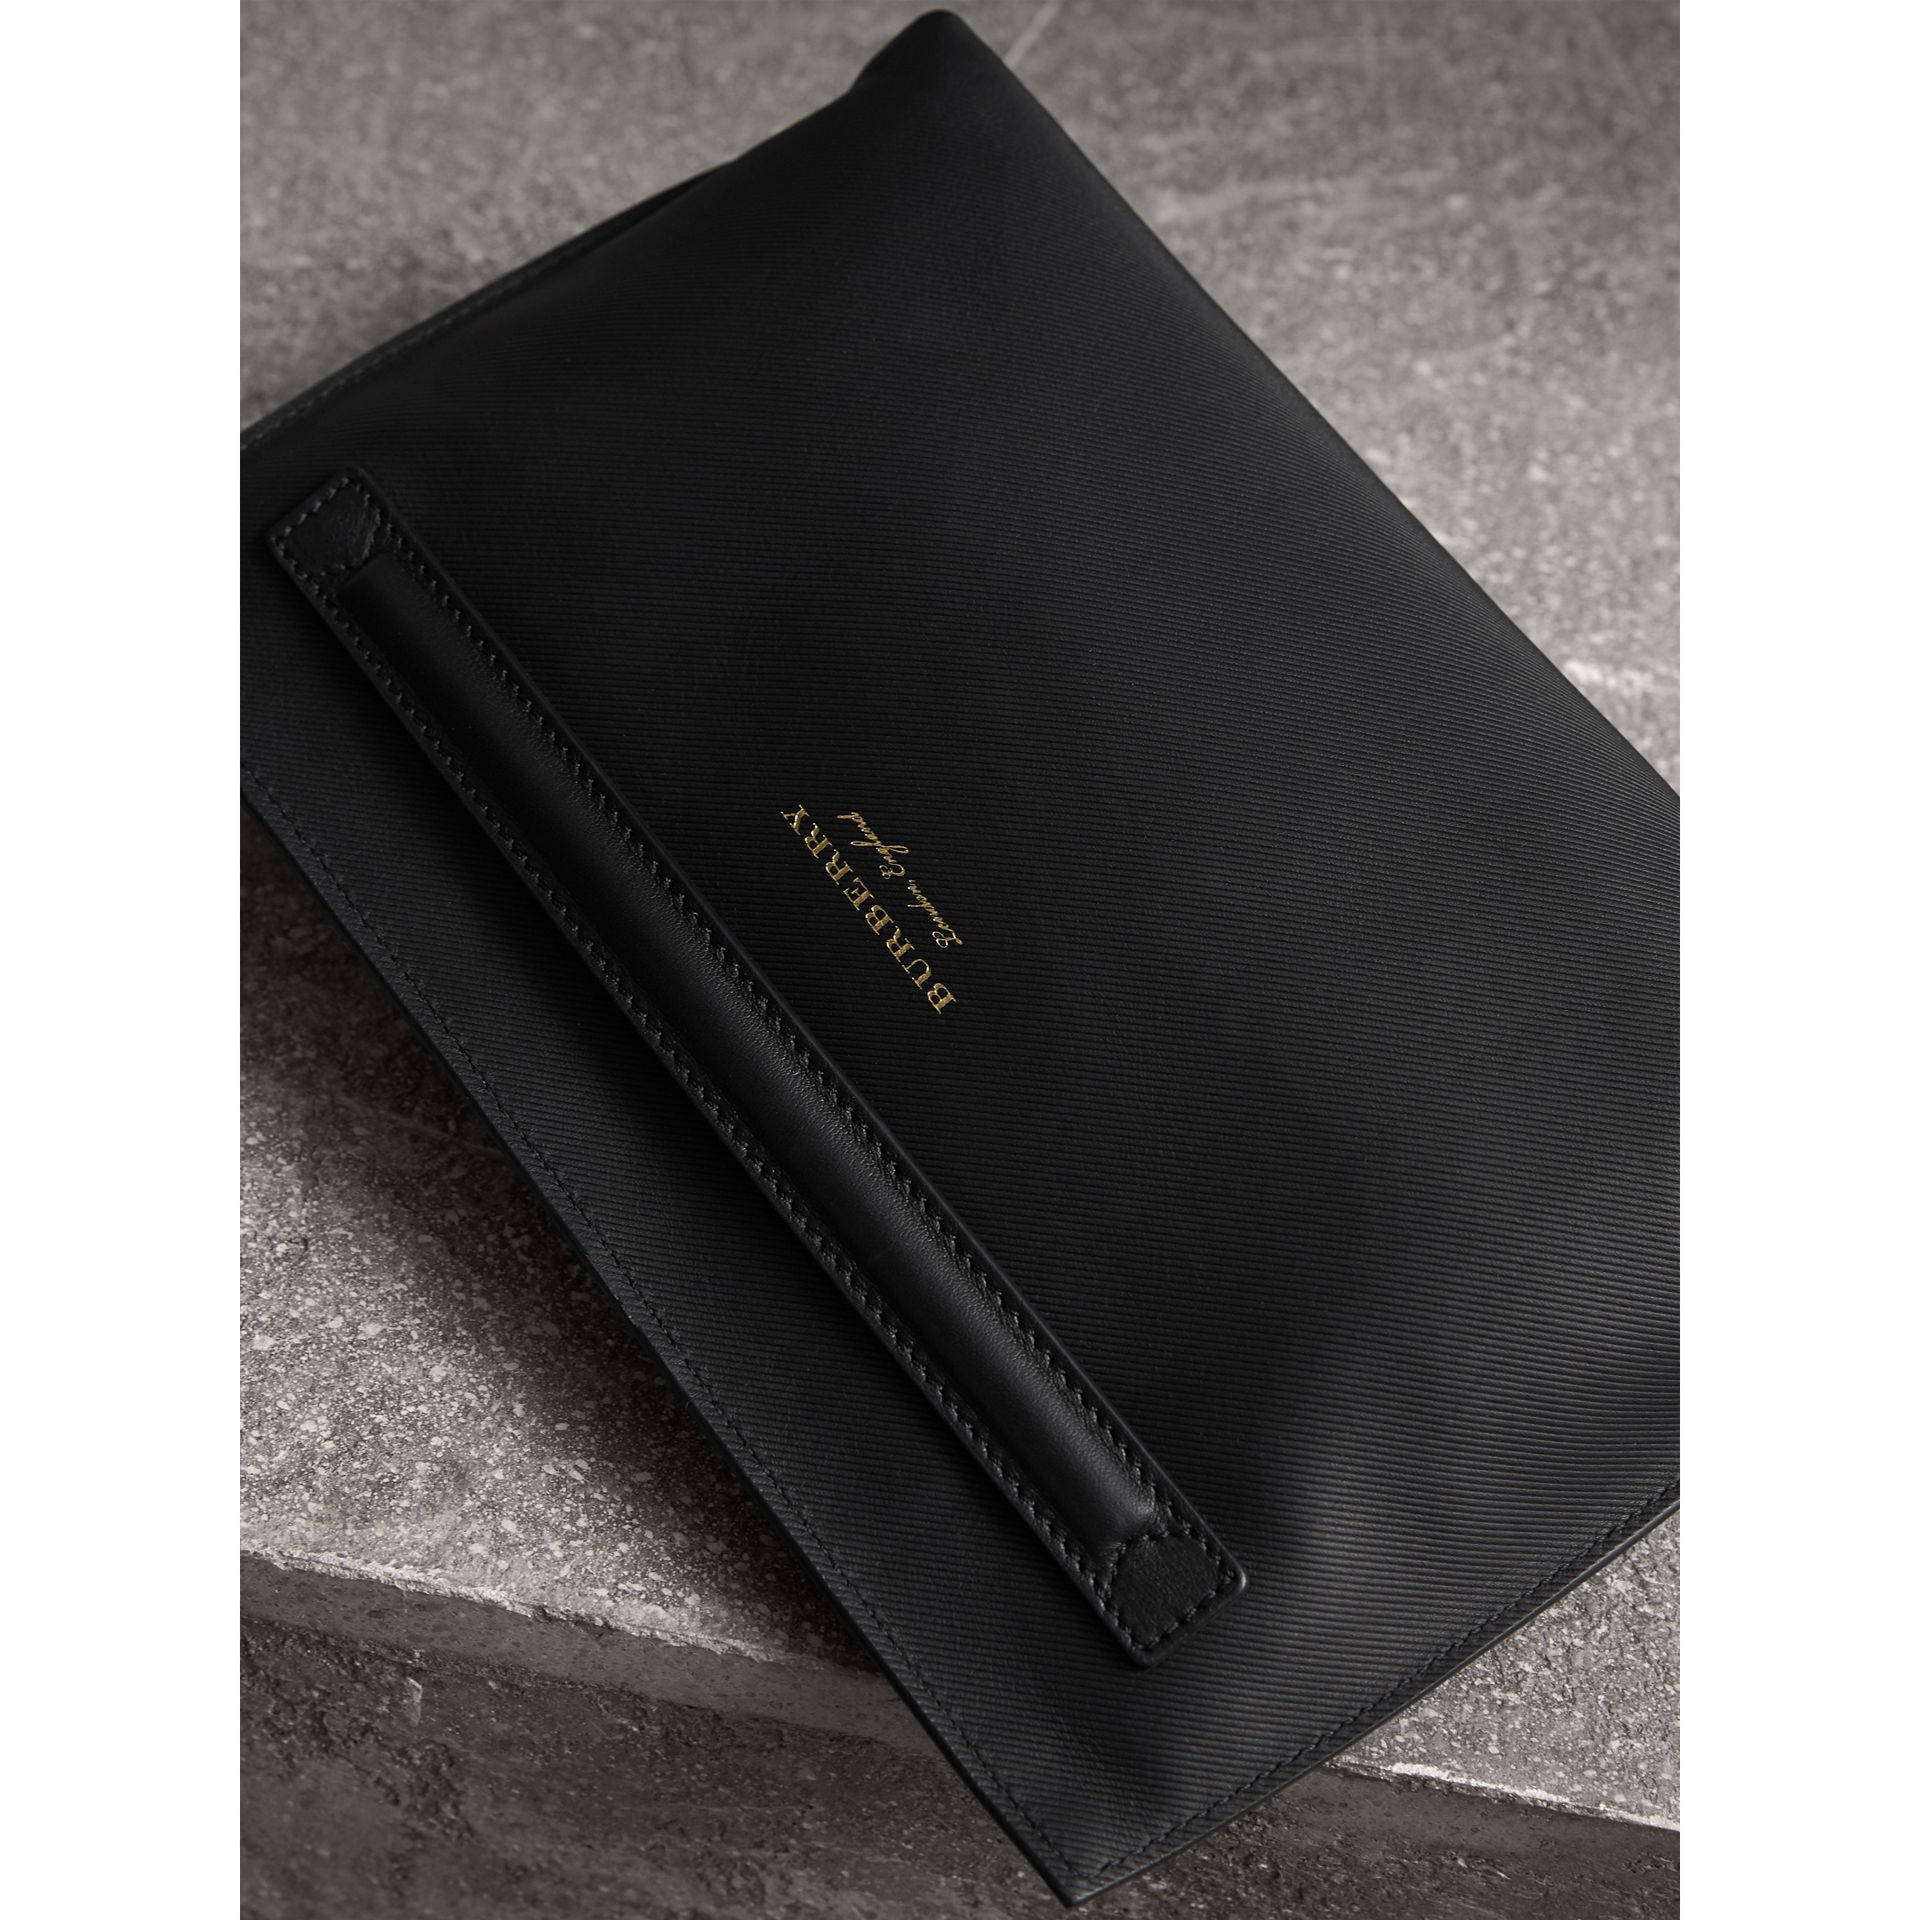 Trench Leather Wristlet Pouch in Black - Women | Burberry - gallery image 3